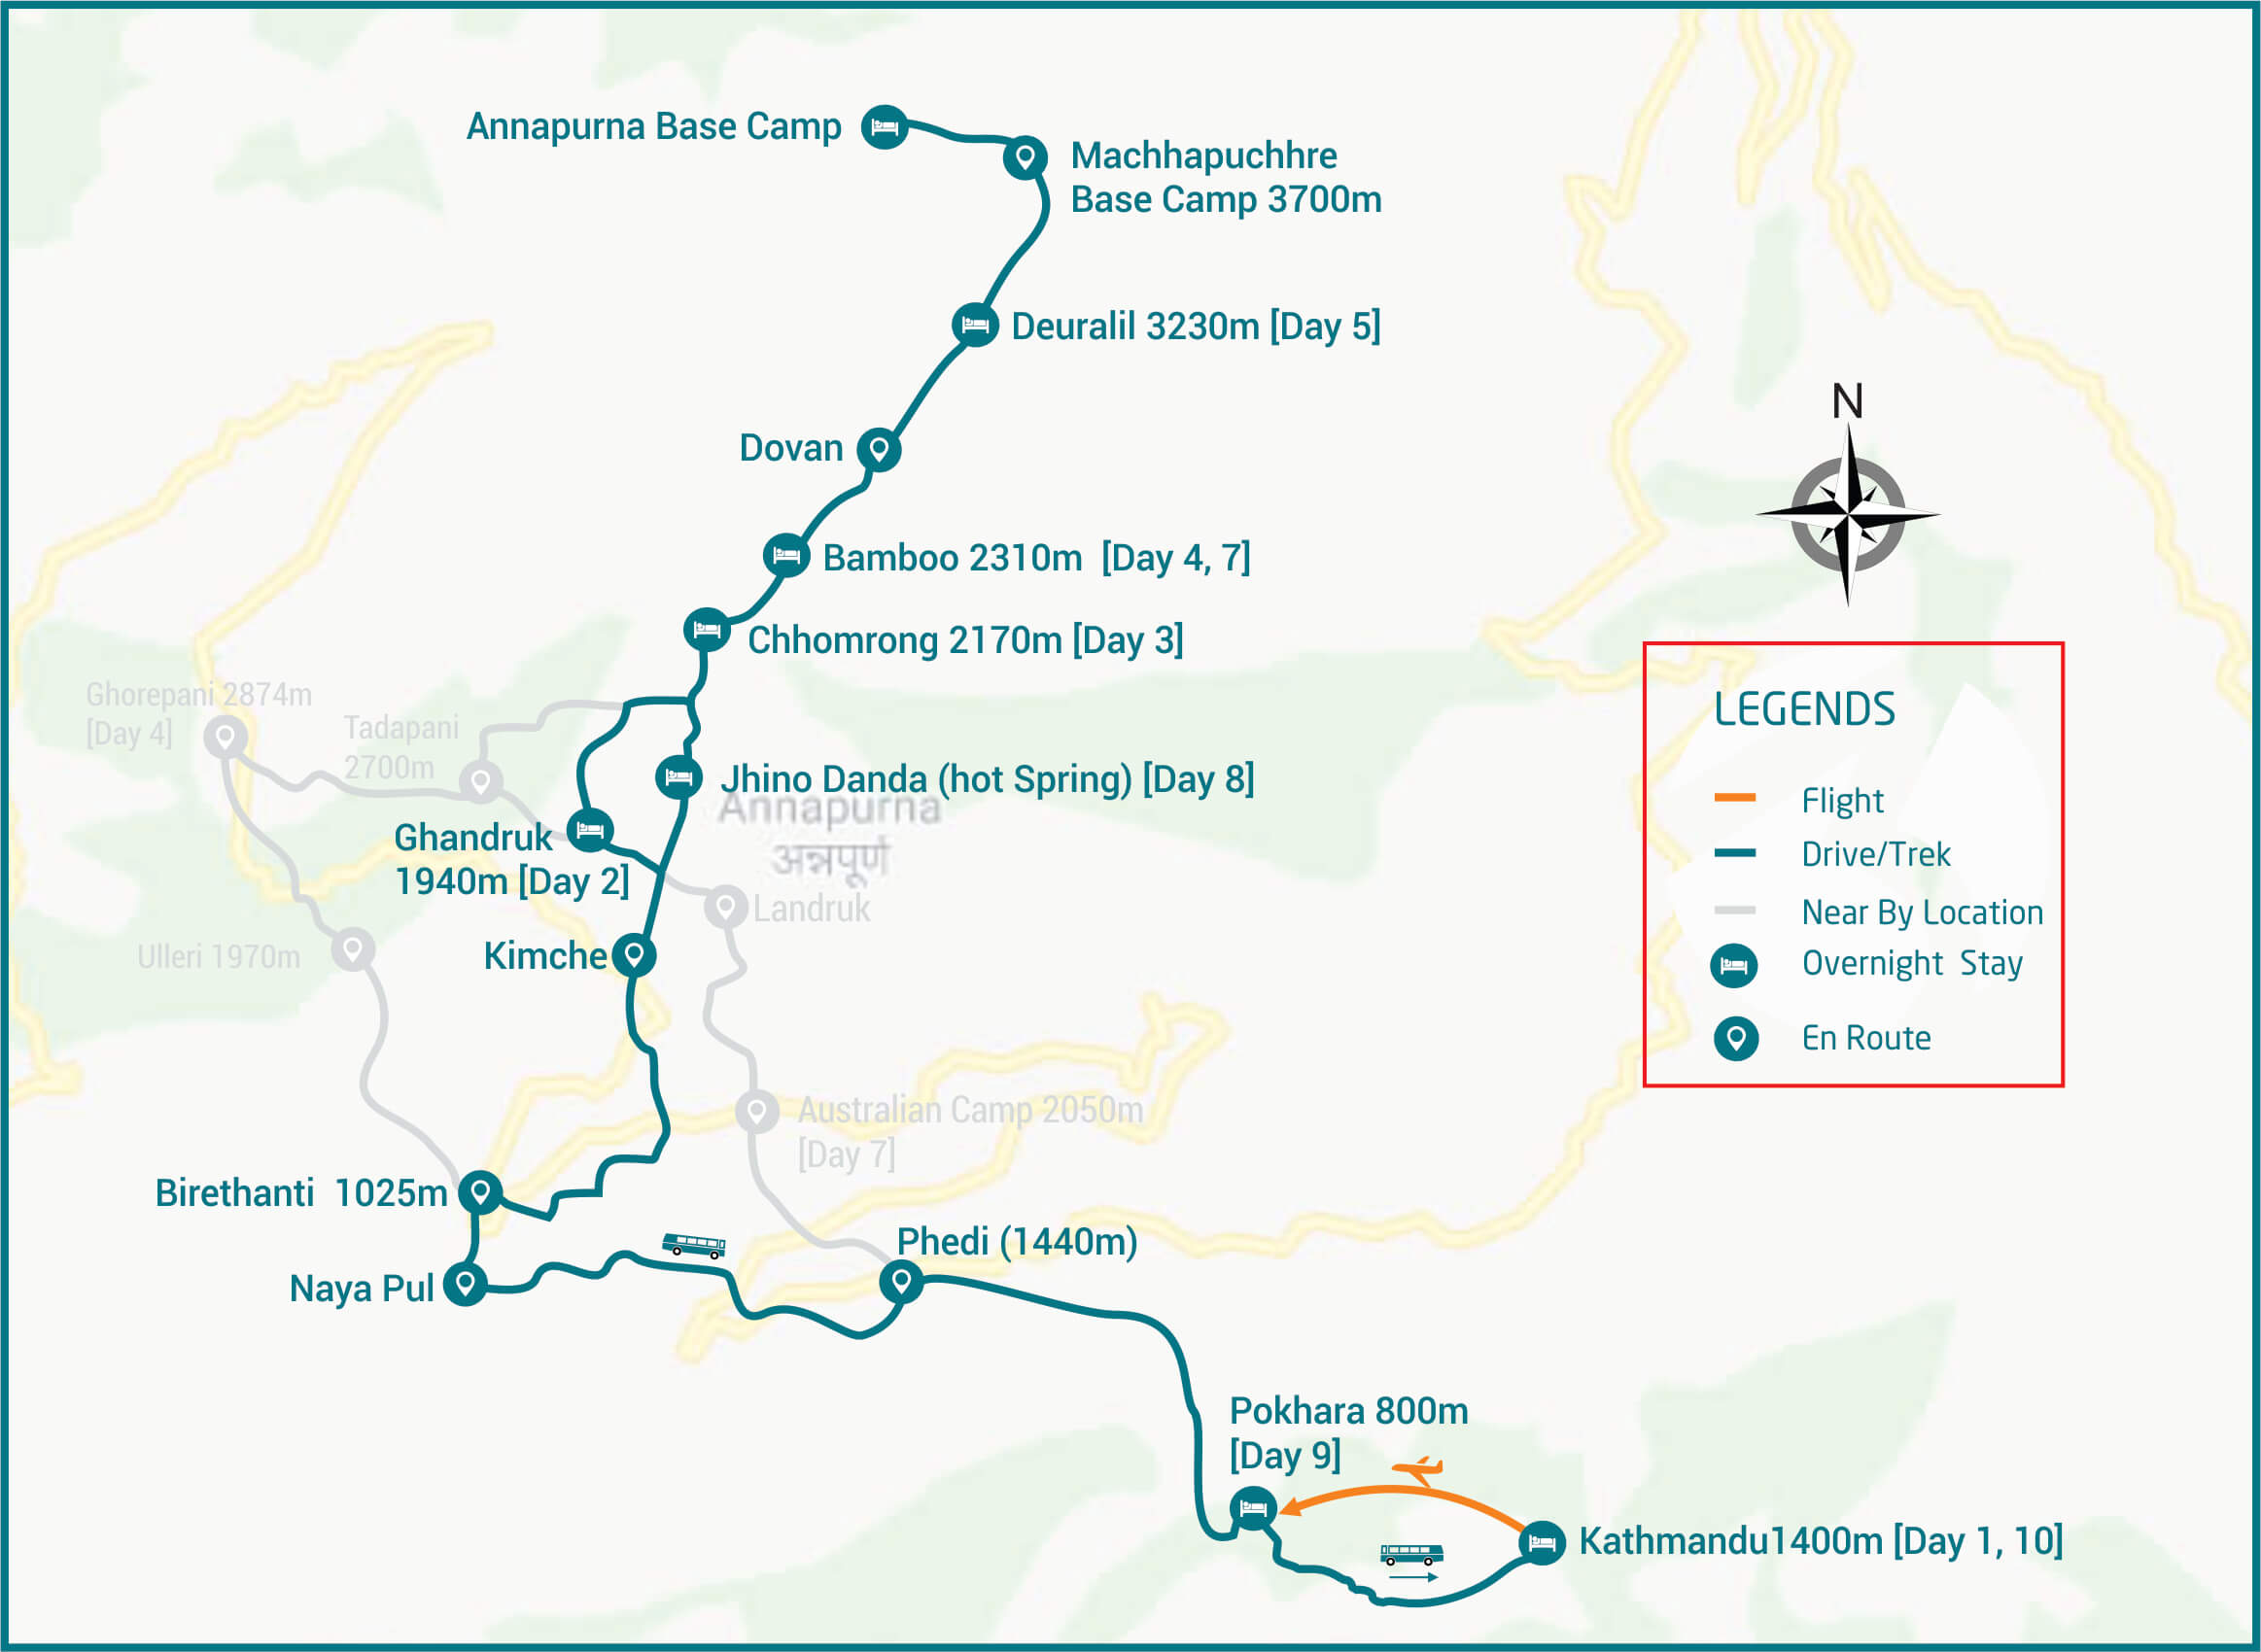 annapurna base camp trek route map